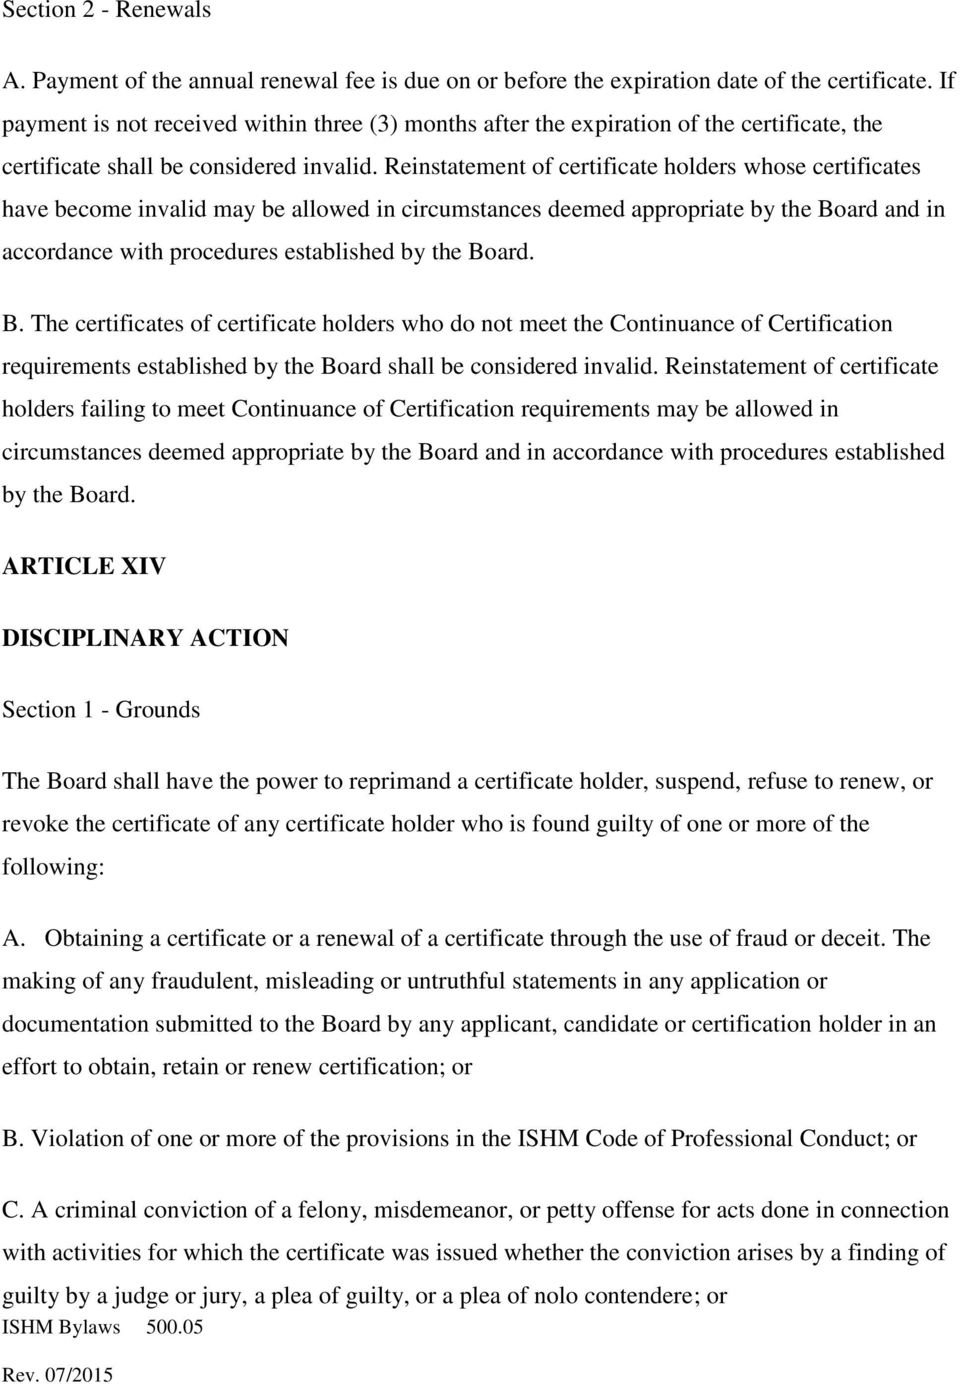 Reinstatement of certificate holders whose certificates have become invalid may be allowed in circumstances deemed appropriate by the Board and in accordance with procedures established by the Board.